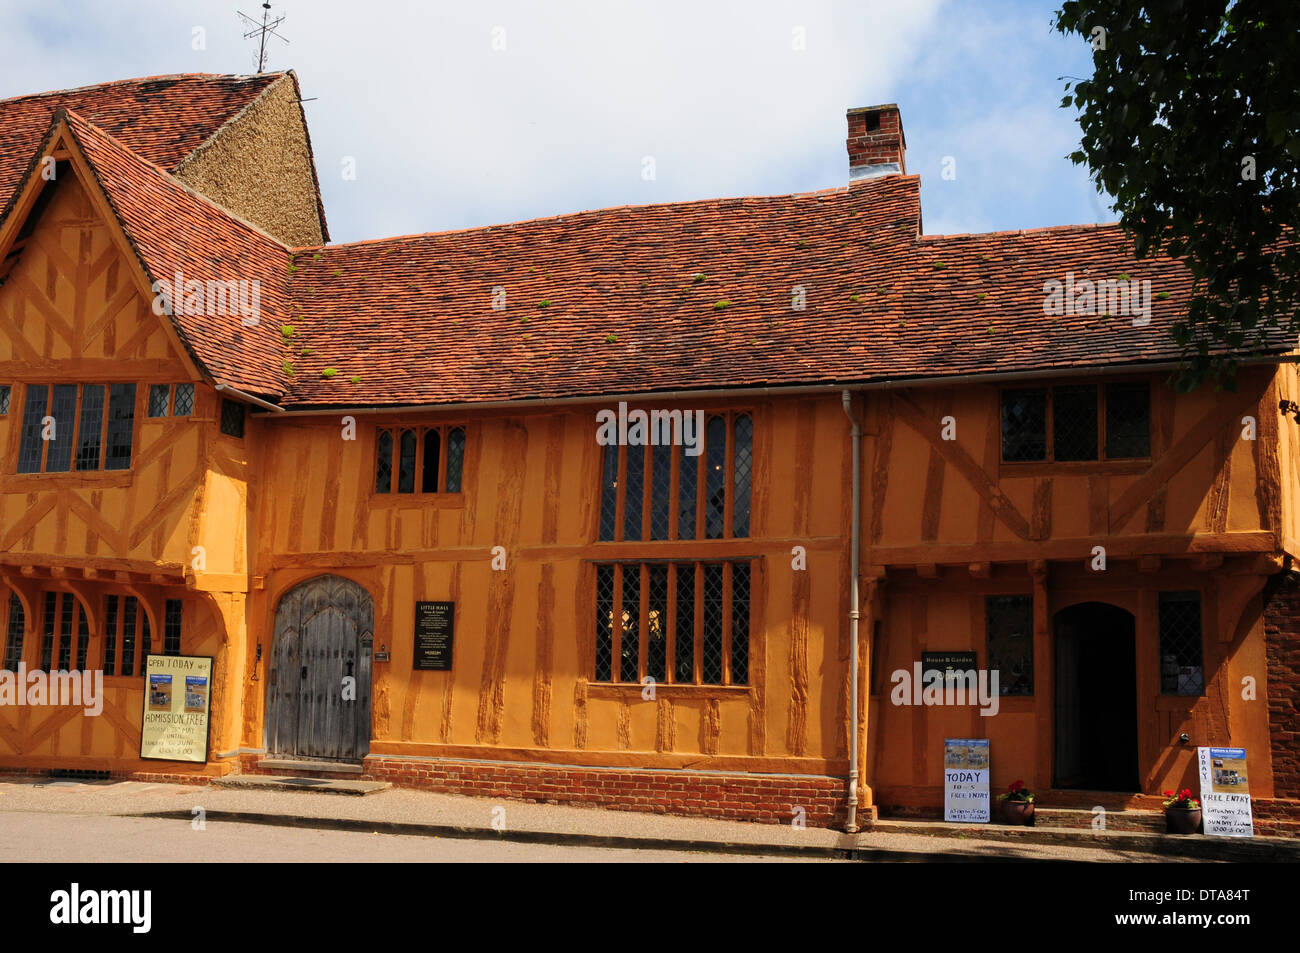 The Little Hall, now a museum, Lavenham, Suffolk. - Stock Image